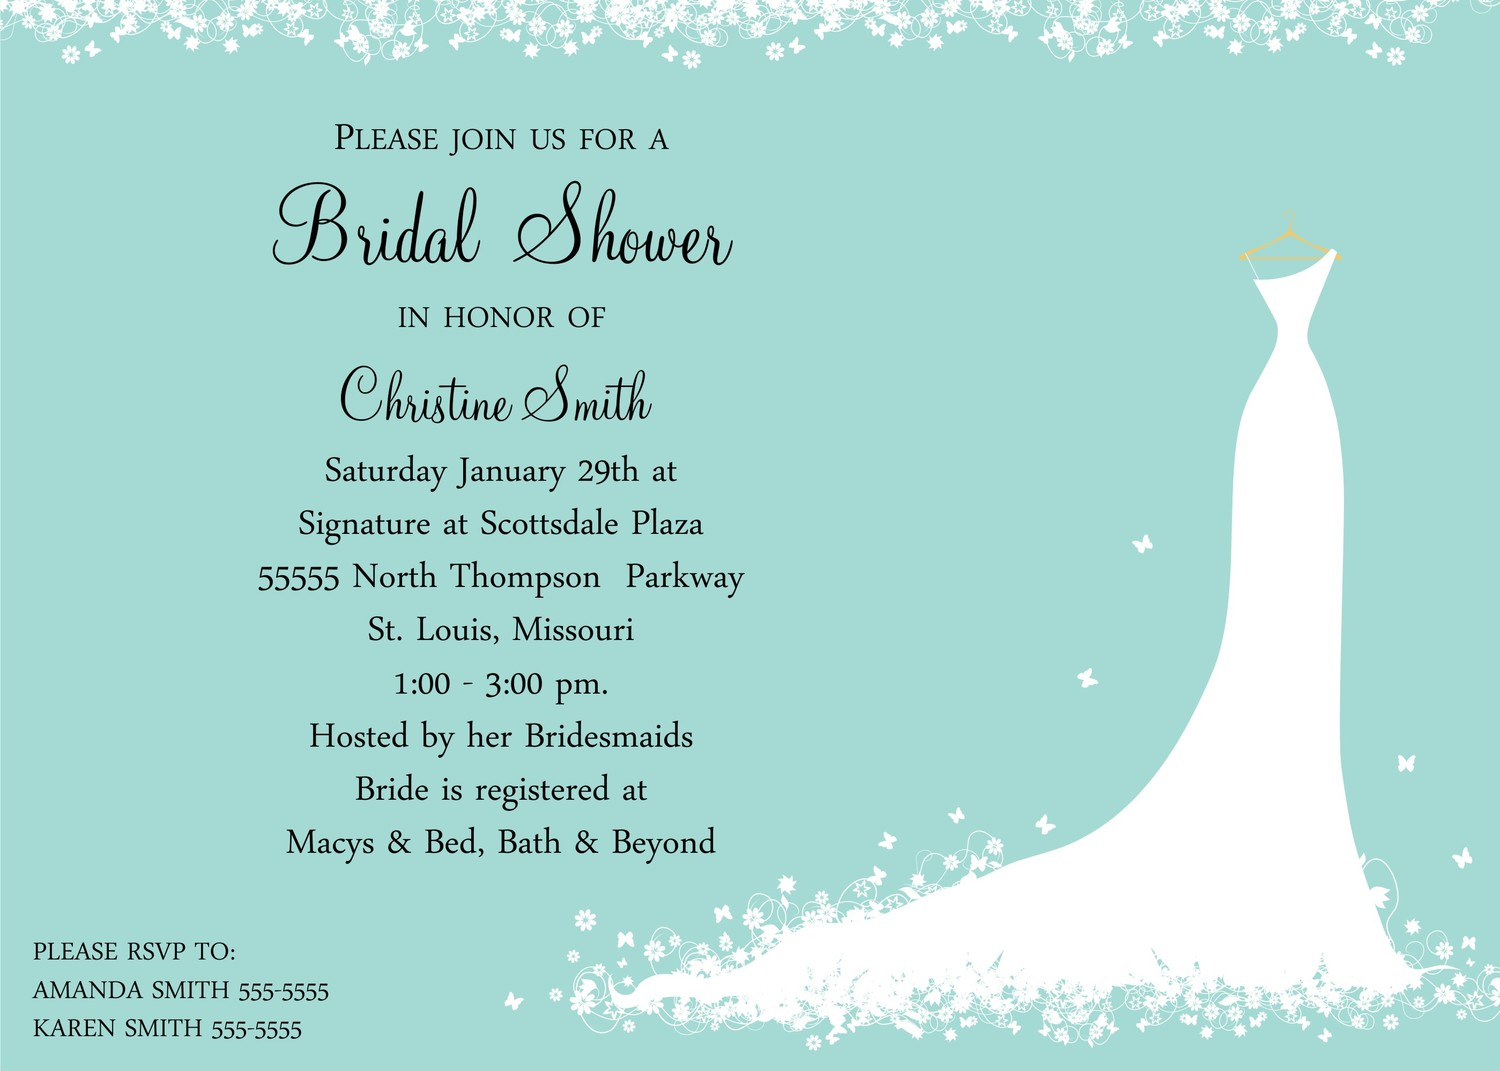 Bridals by Sandra works with numerous bridesmaids companies. Listed below are just a few of the many styles available. Bridals by Sandra's consultants will help you coordinate your wedding by assisting you in finding the perfect bridesmaid style to compliment your beautiful wedding gown.